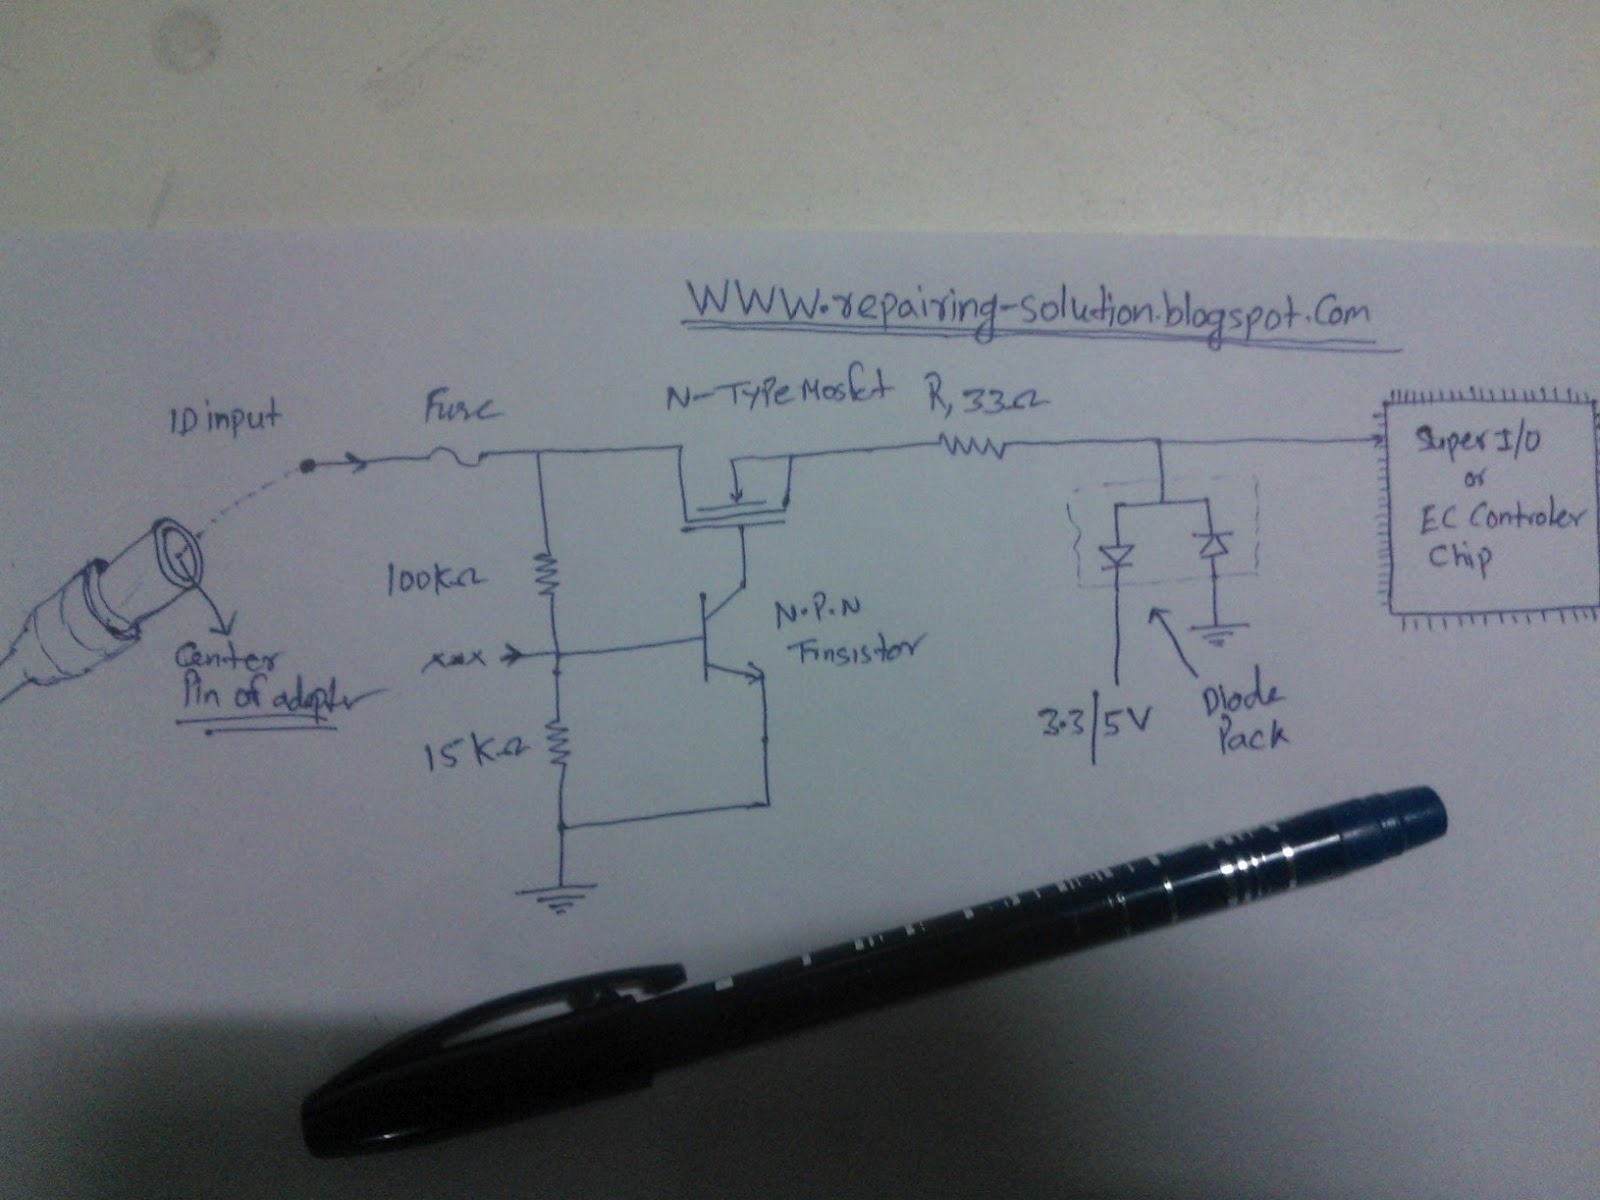 TechZone HydraulicValves furthermore Digital  munication  litude shift keying also How To Fix If Dell Laptop Not additionally Mx1lgp4bnekpiue7036 additionally Rs485 Receiving Problem In Pic Microcontroller. on circuit diagram